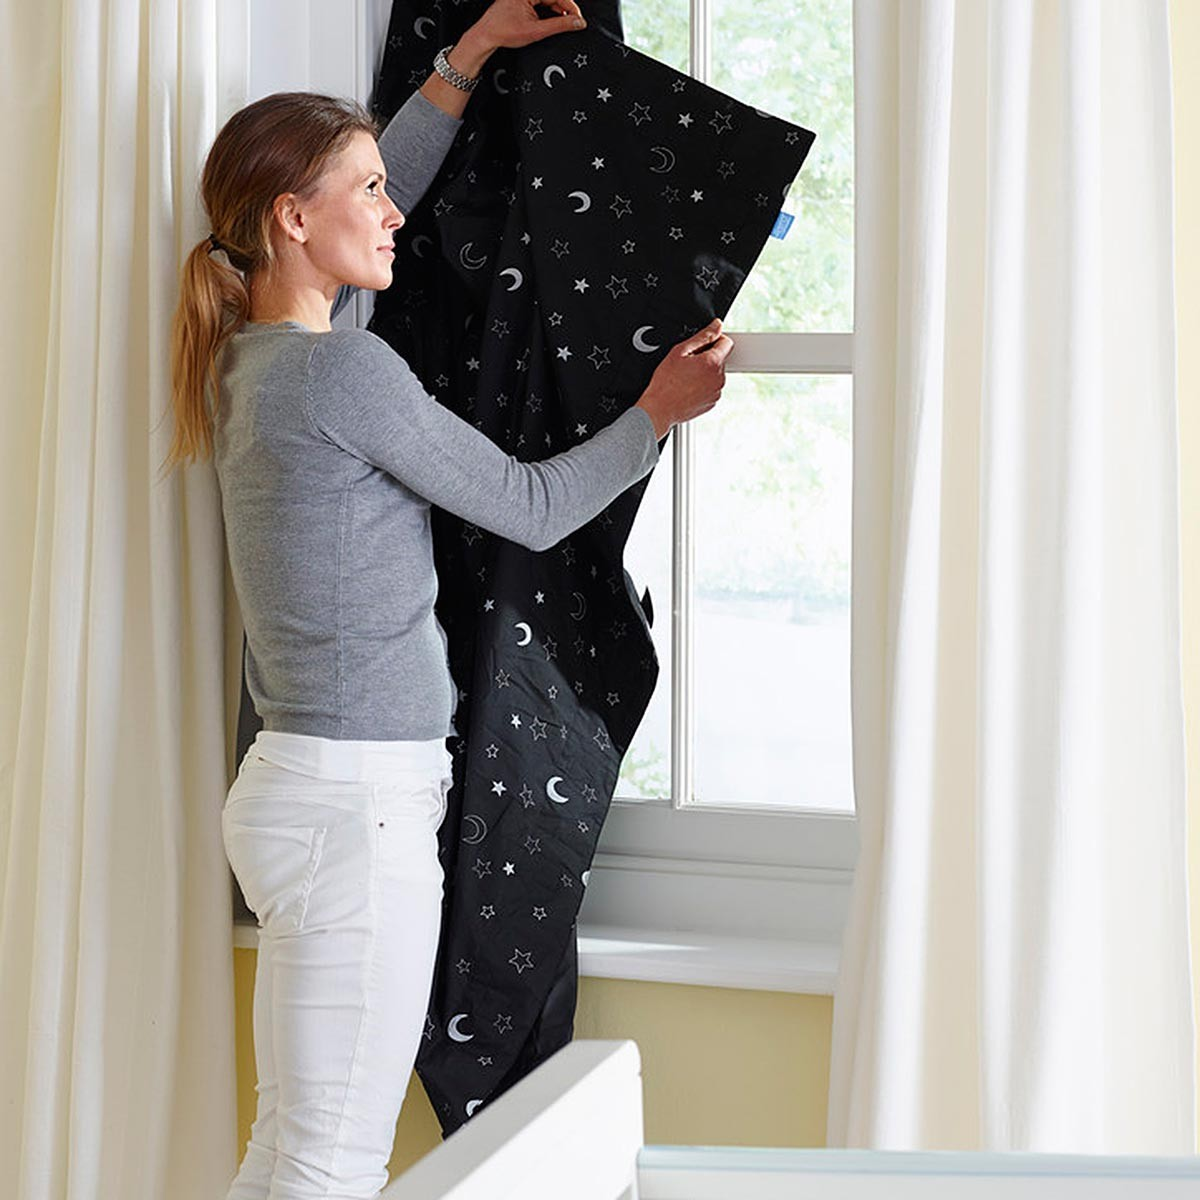 travel blackout blinds for kids